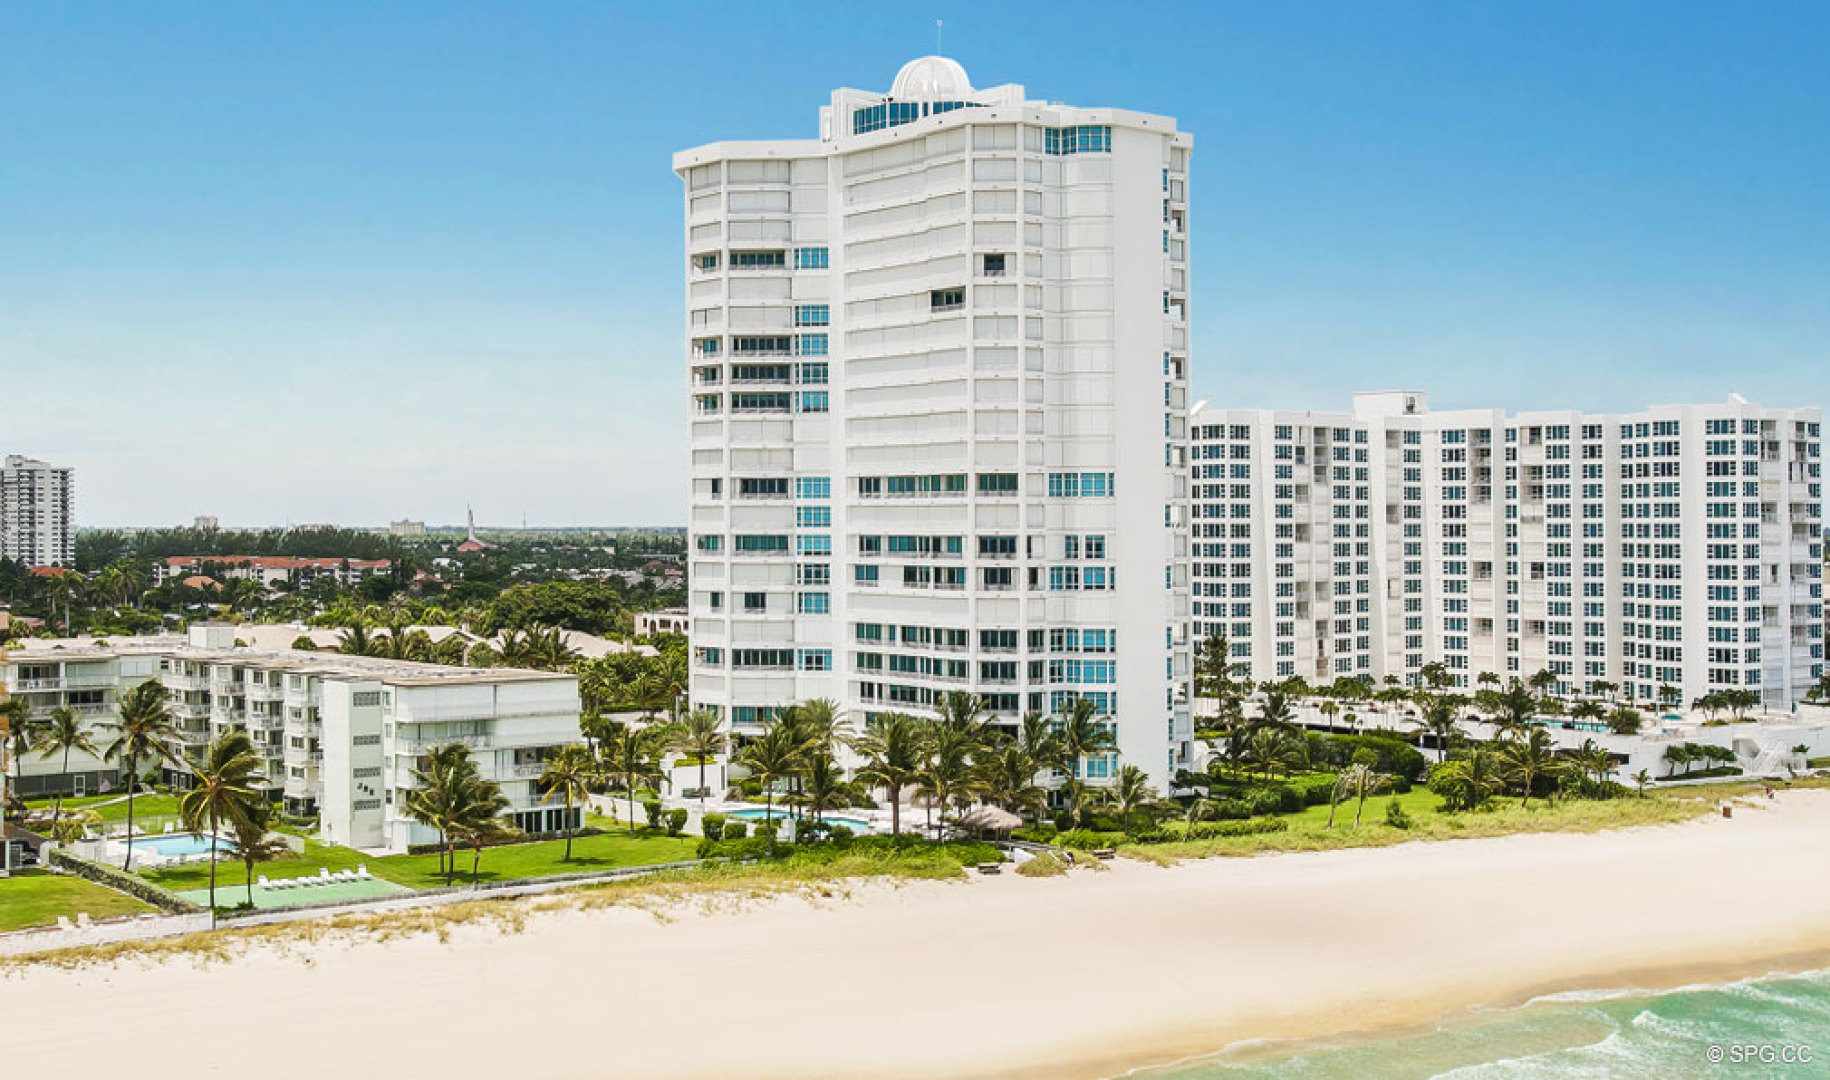 Beach View of Cristelle, Luxury Oceanfront Condos in Lauderdale By The Sea, Florida 33062